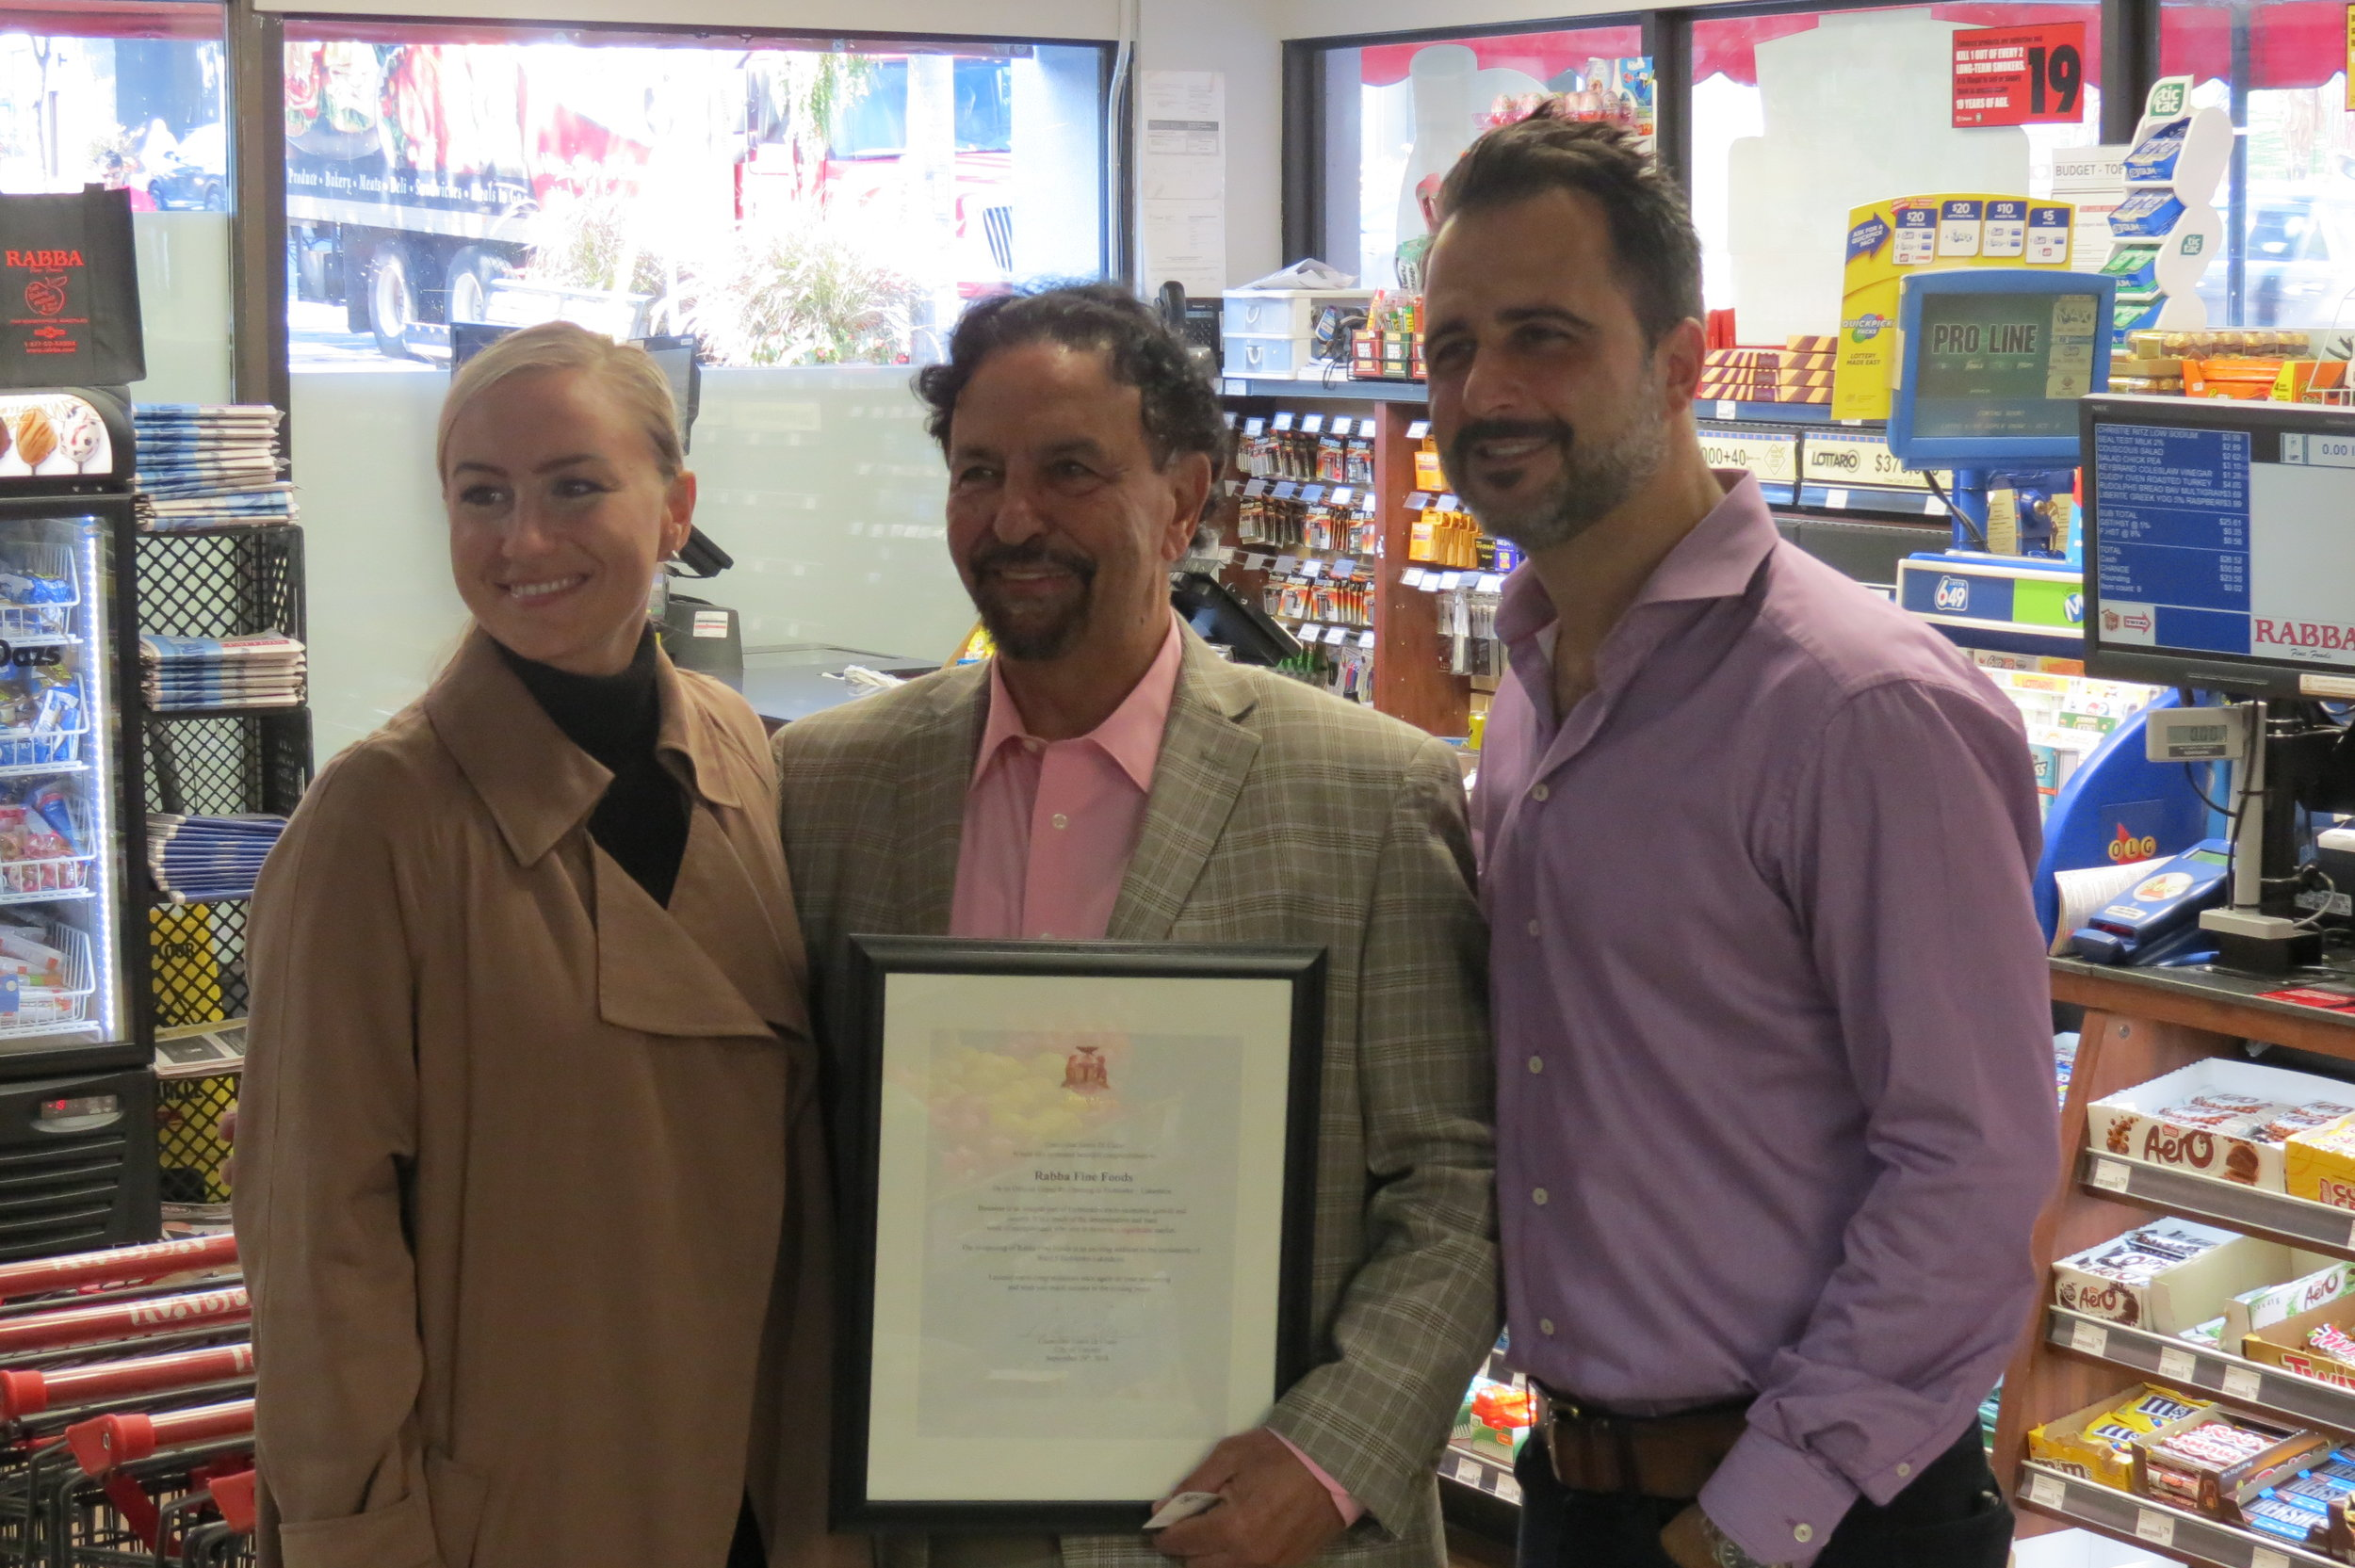 MPP Etobicoke Centre Kinga Surma and Ward 5 Councillor Justin Di Ciano, presented a Congratulatory Scroll to Rabba Fine Foods founder Jack Rabba, during the grand re-opening at the 4869 Dundas St W location.